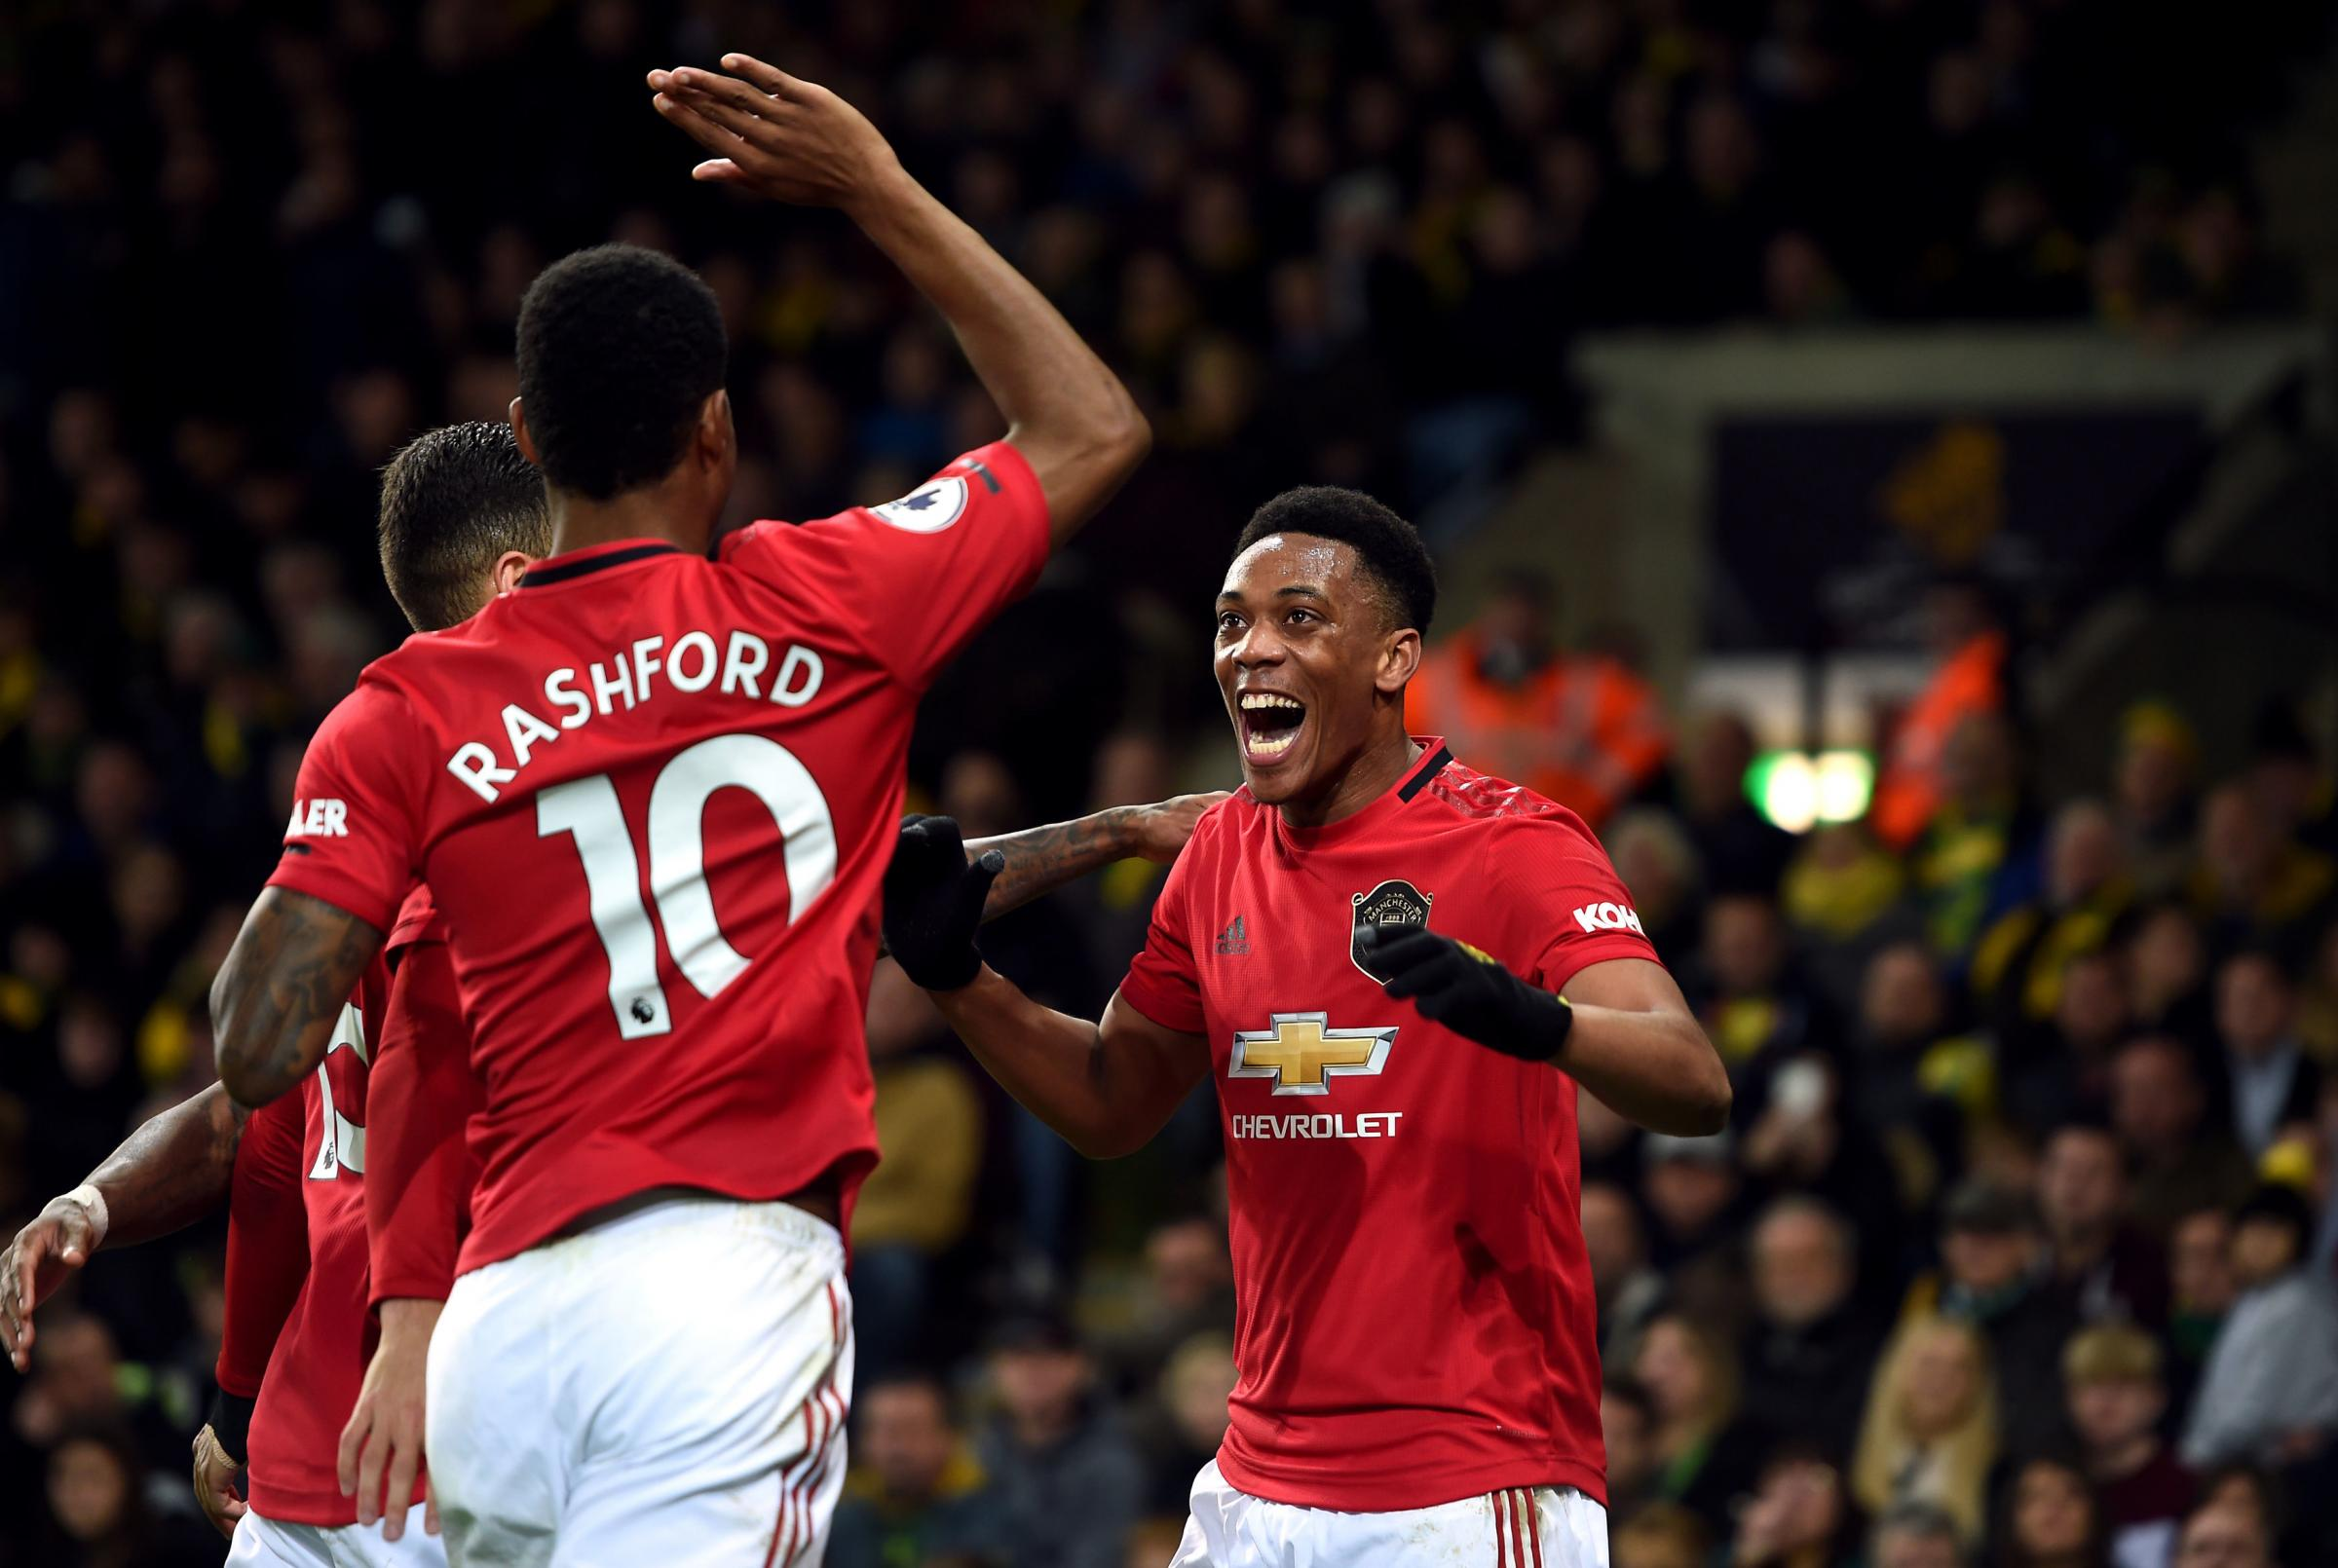 Get the lowdown on Albion's opponent Manchester United